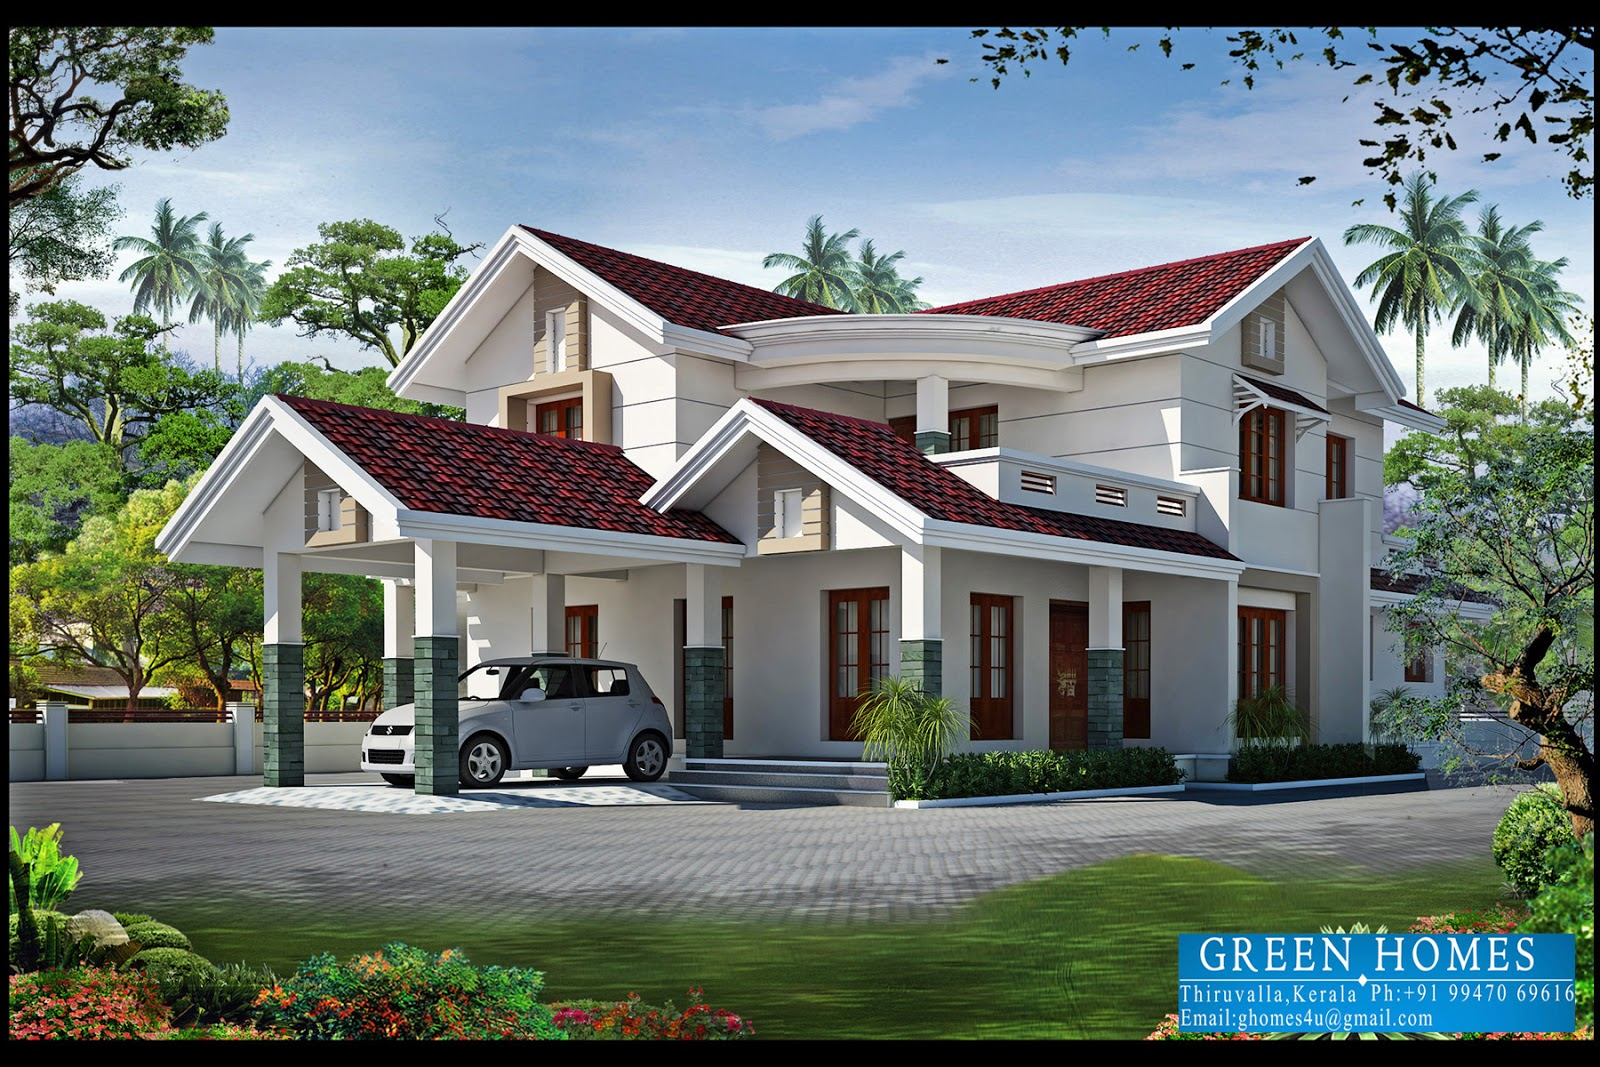 Green homes 4bhk kerala home design 2550 for House plans kerala model photos